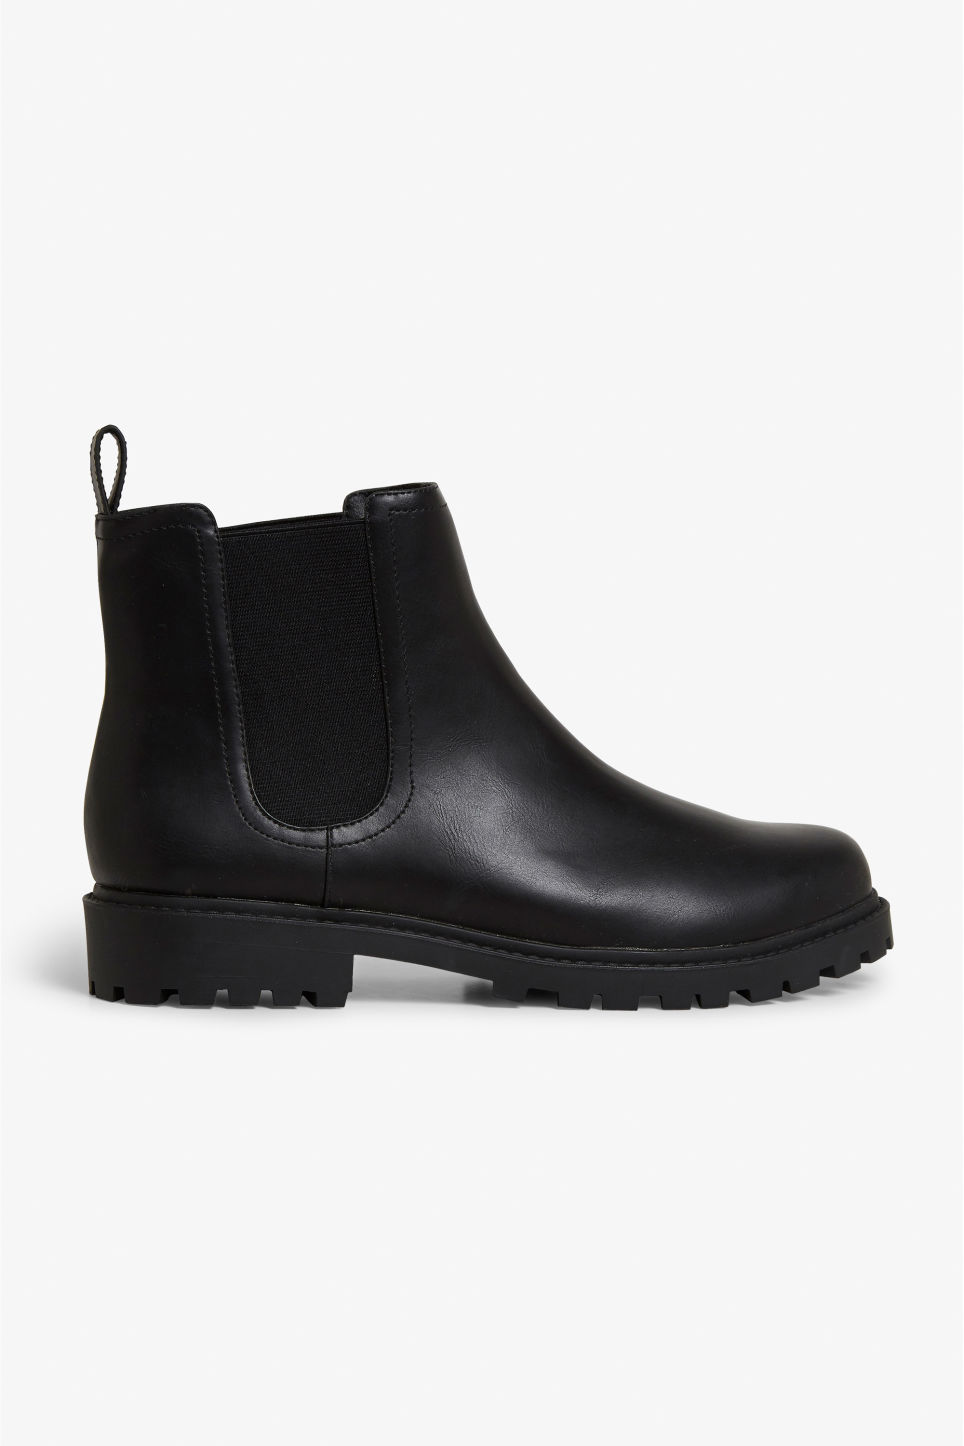 Detailed image of Monki chunky chelsea boots in black